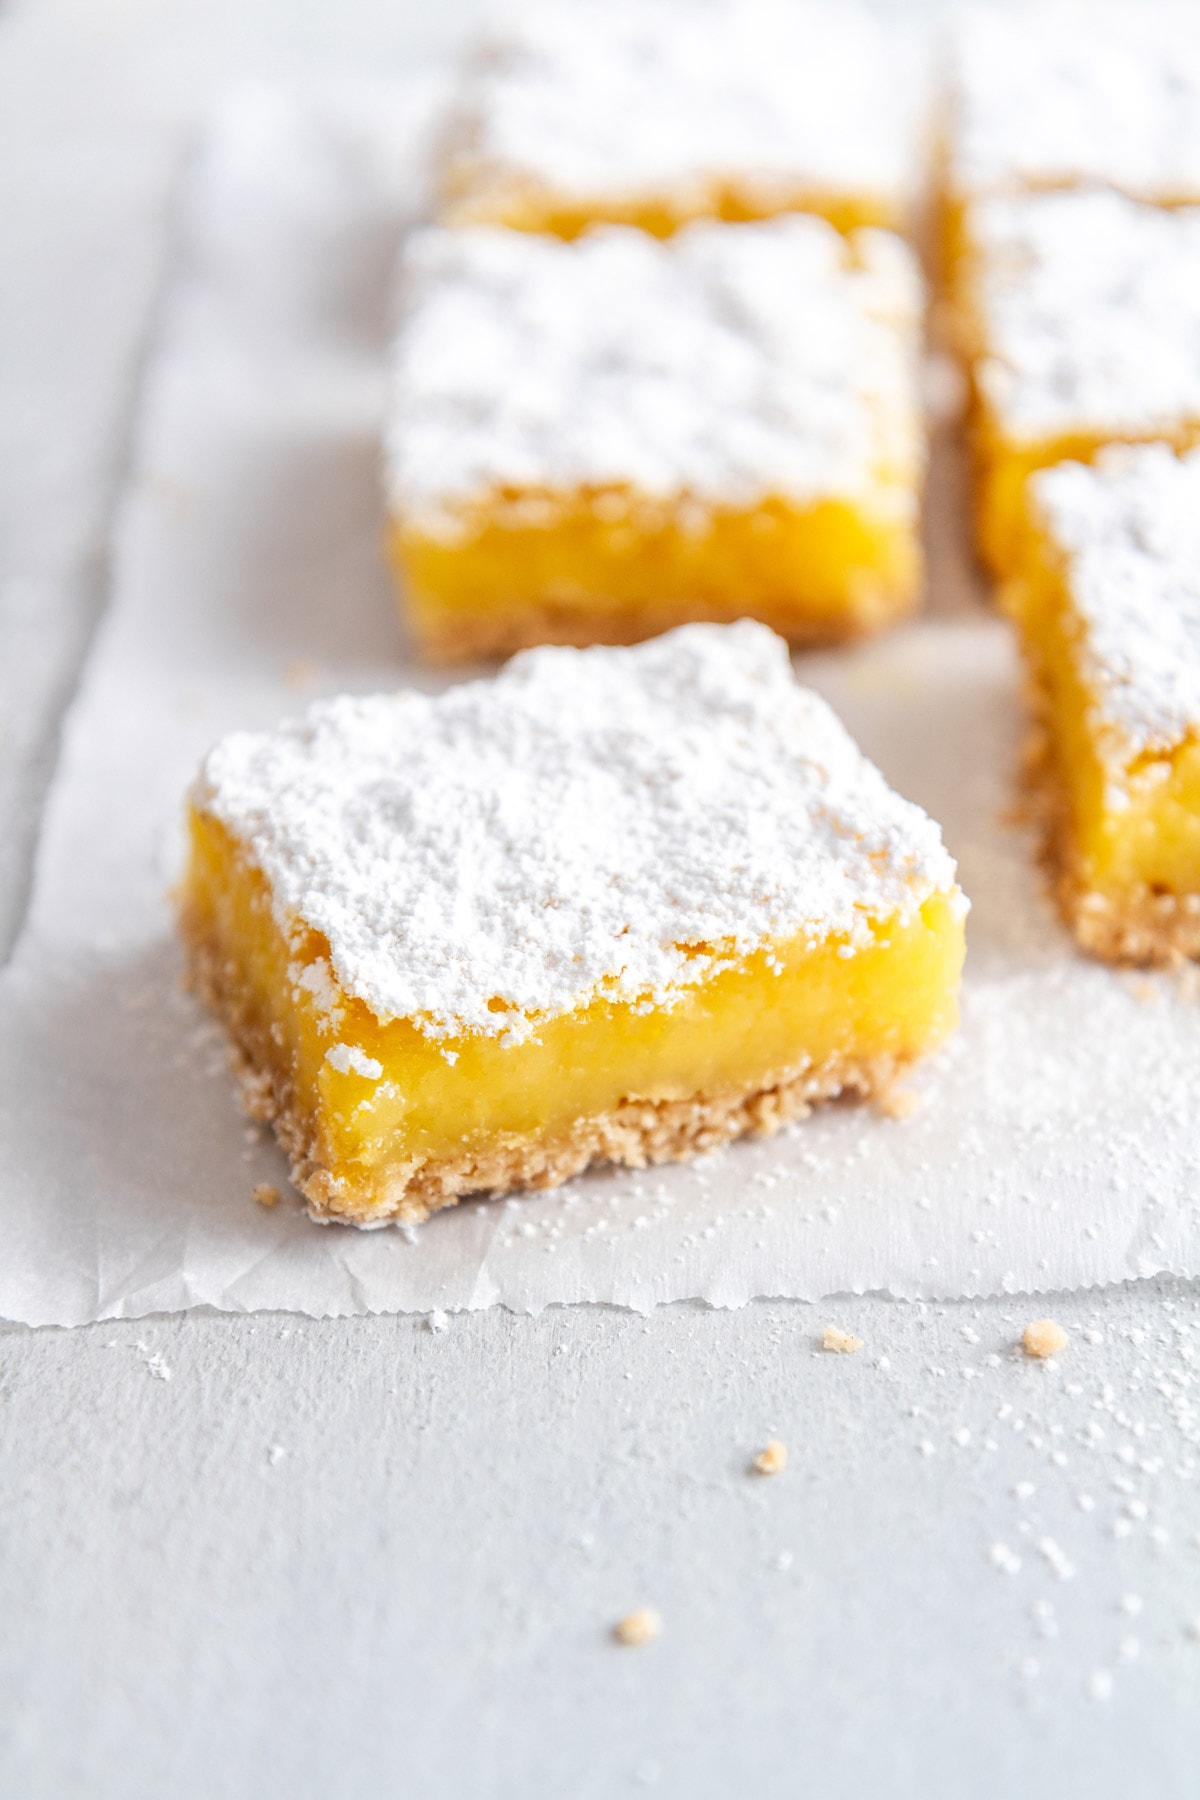 a gluten free lemon bar on a sheet of parchment paper